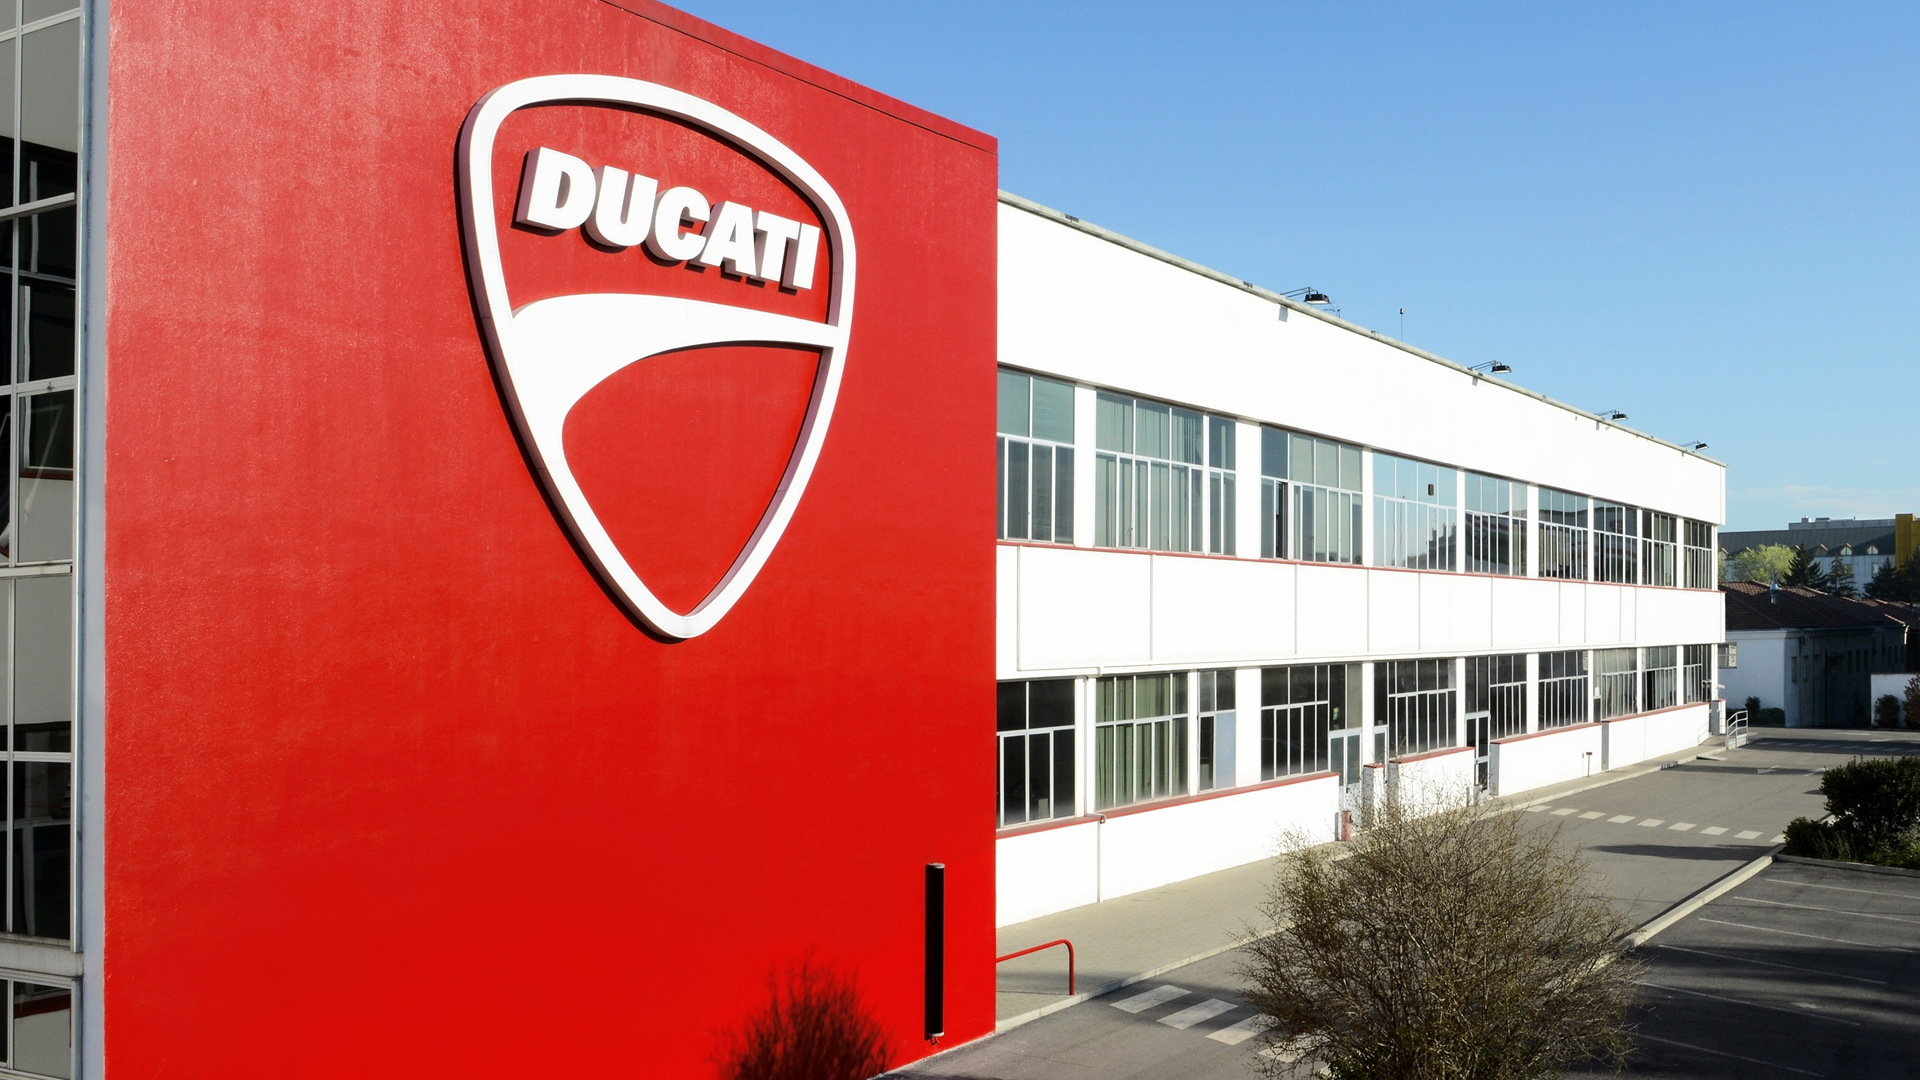 Ducati headquarters in Bologna, Italy